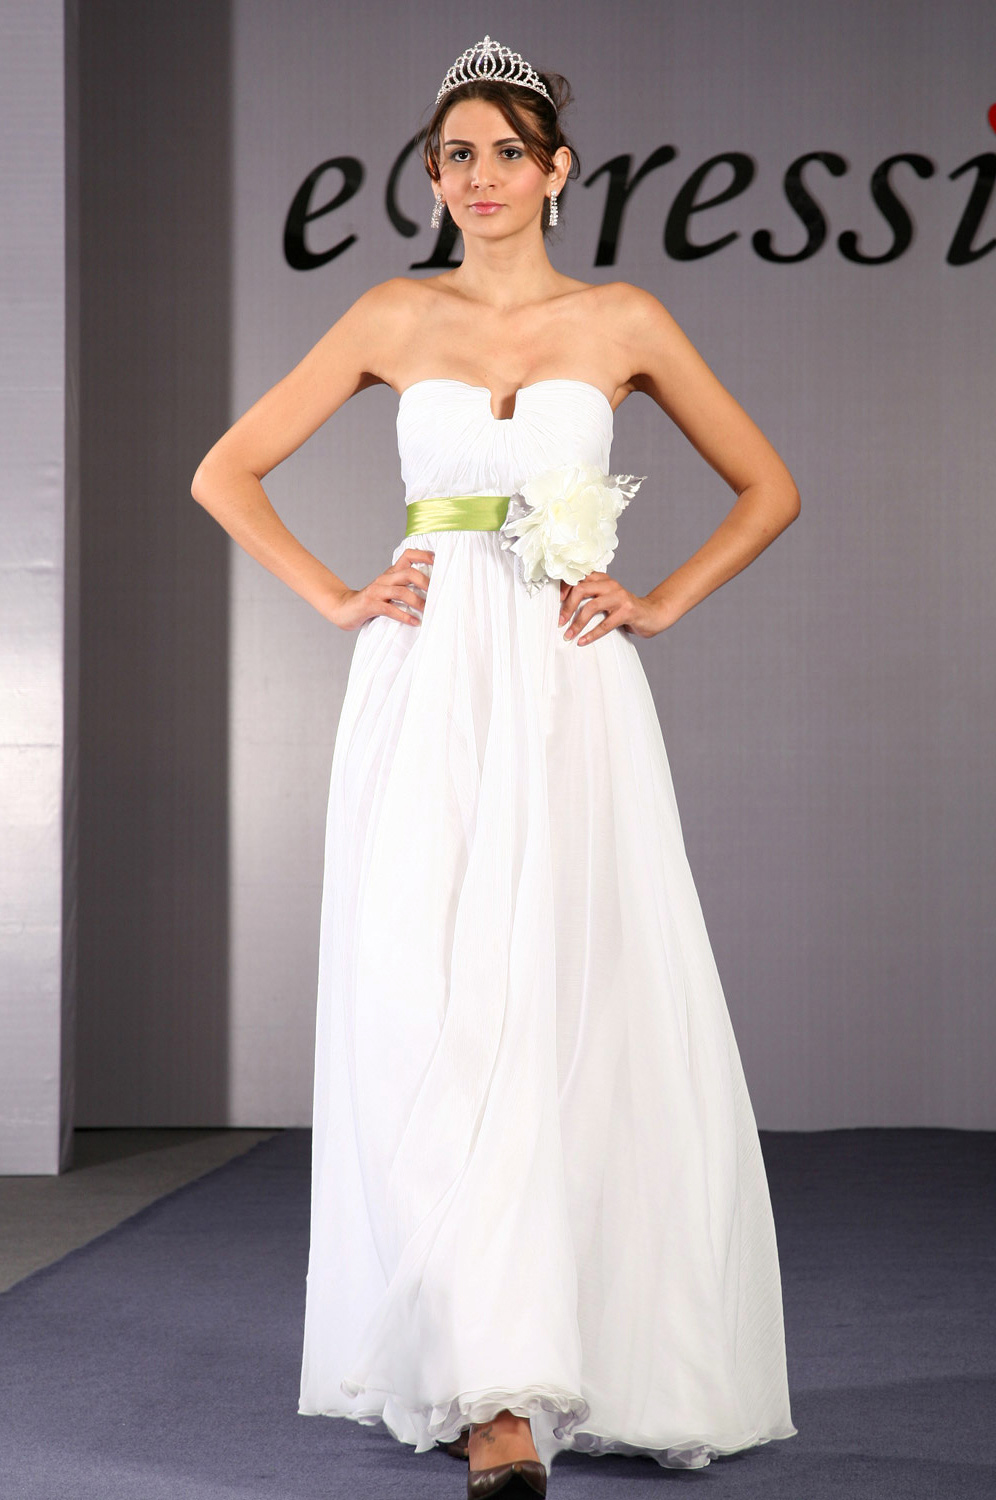 On Sale eDressit Prom Gown Evening Dress without flower (00092107e)